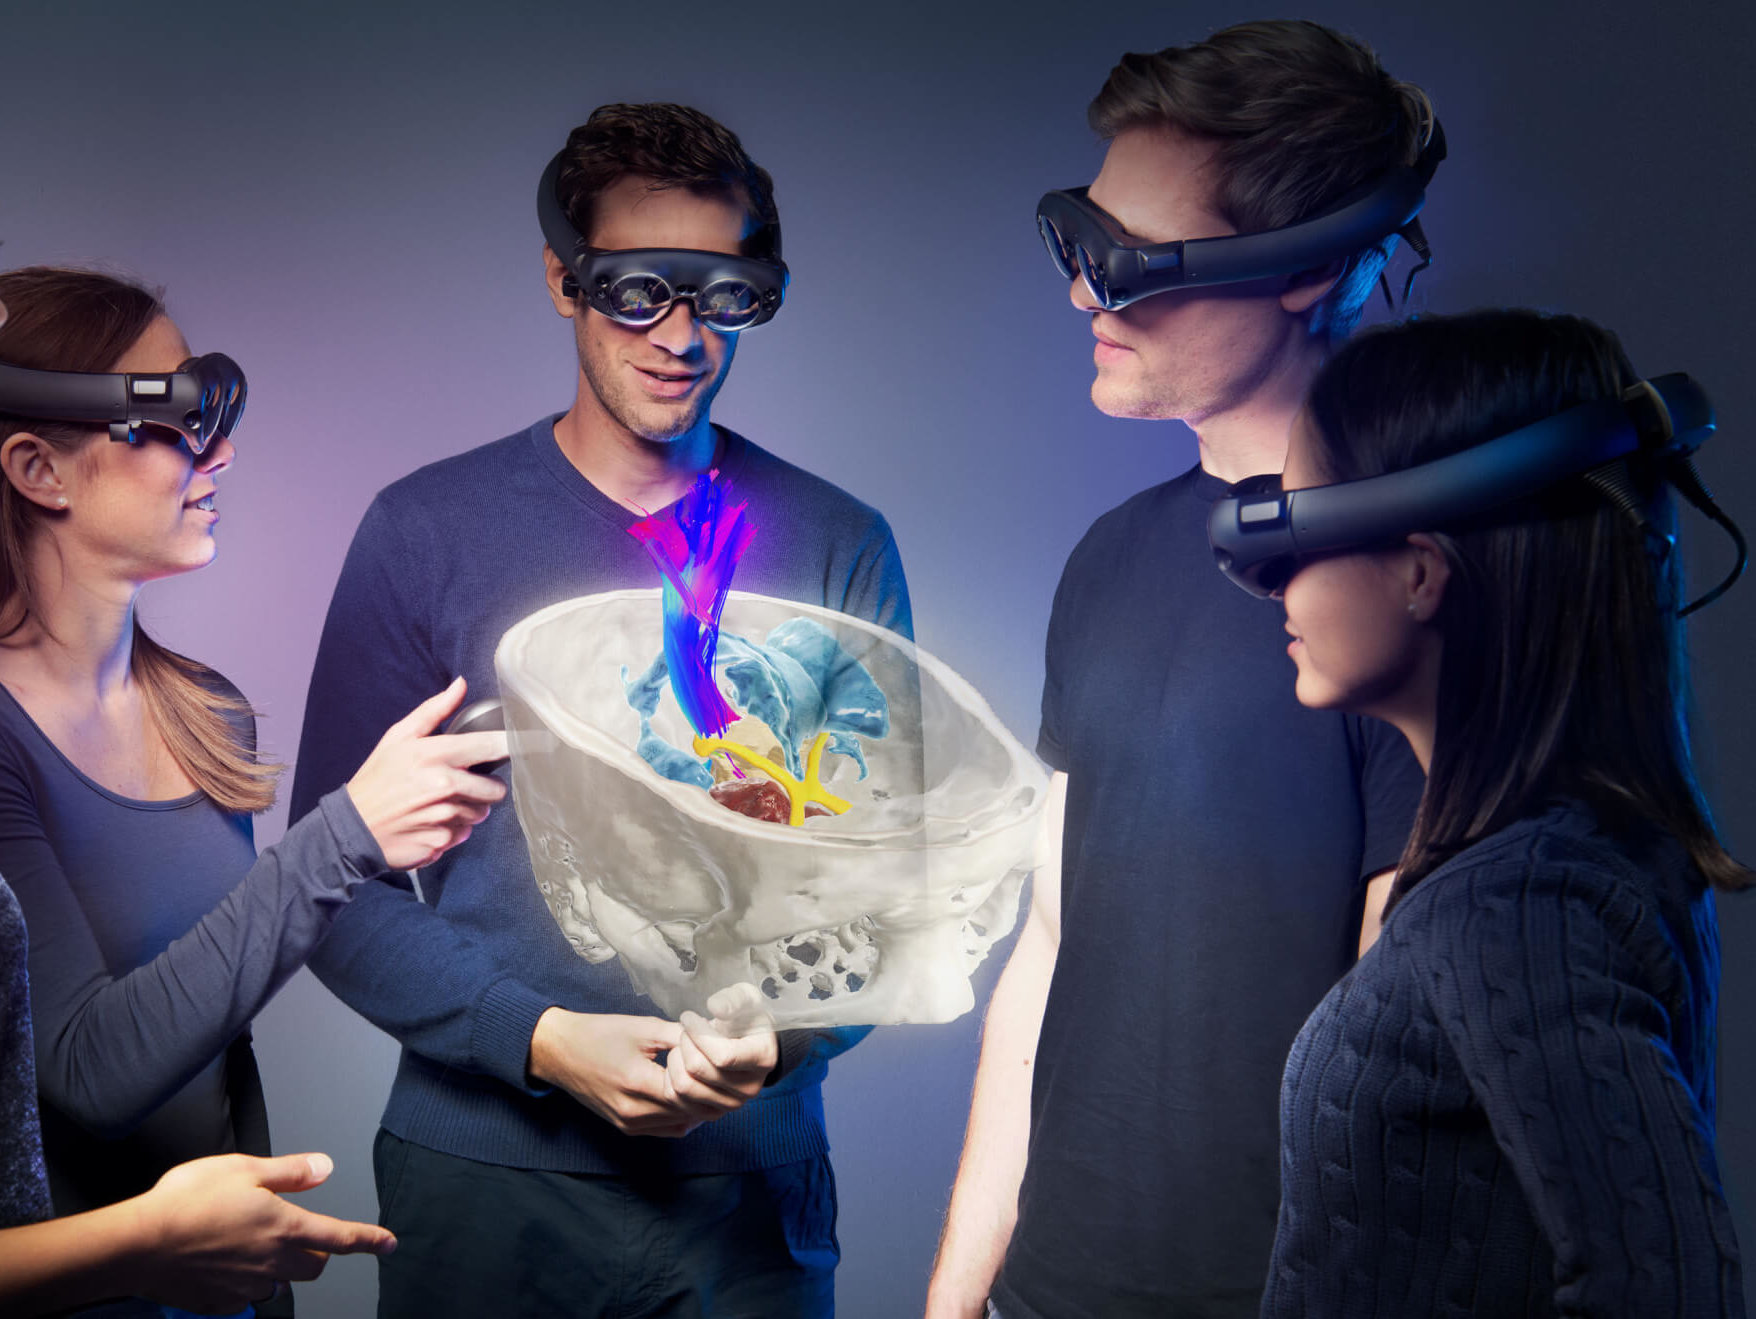 Brainlab Mixed Reality Viewer